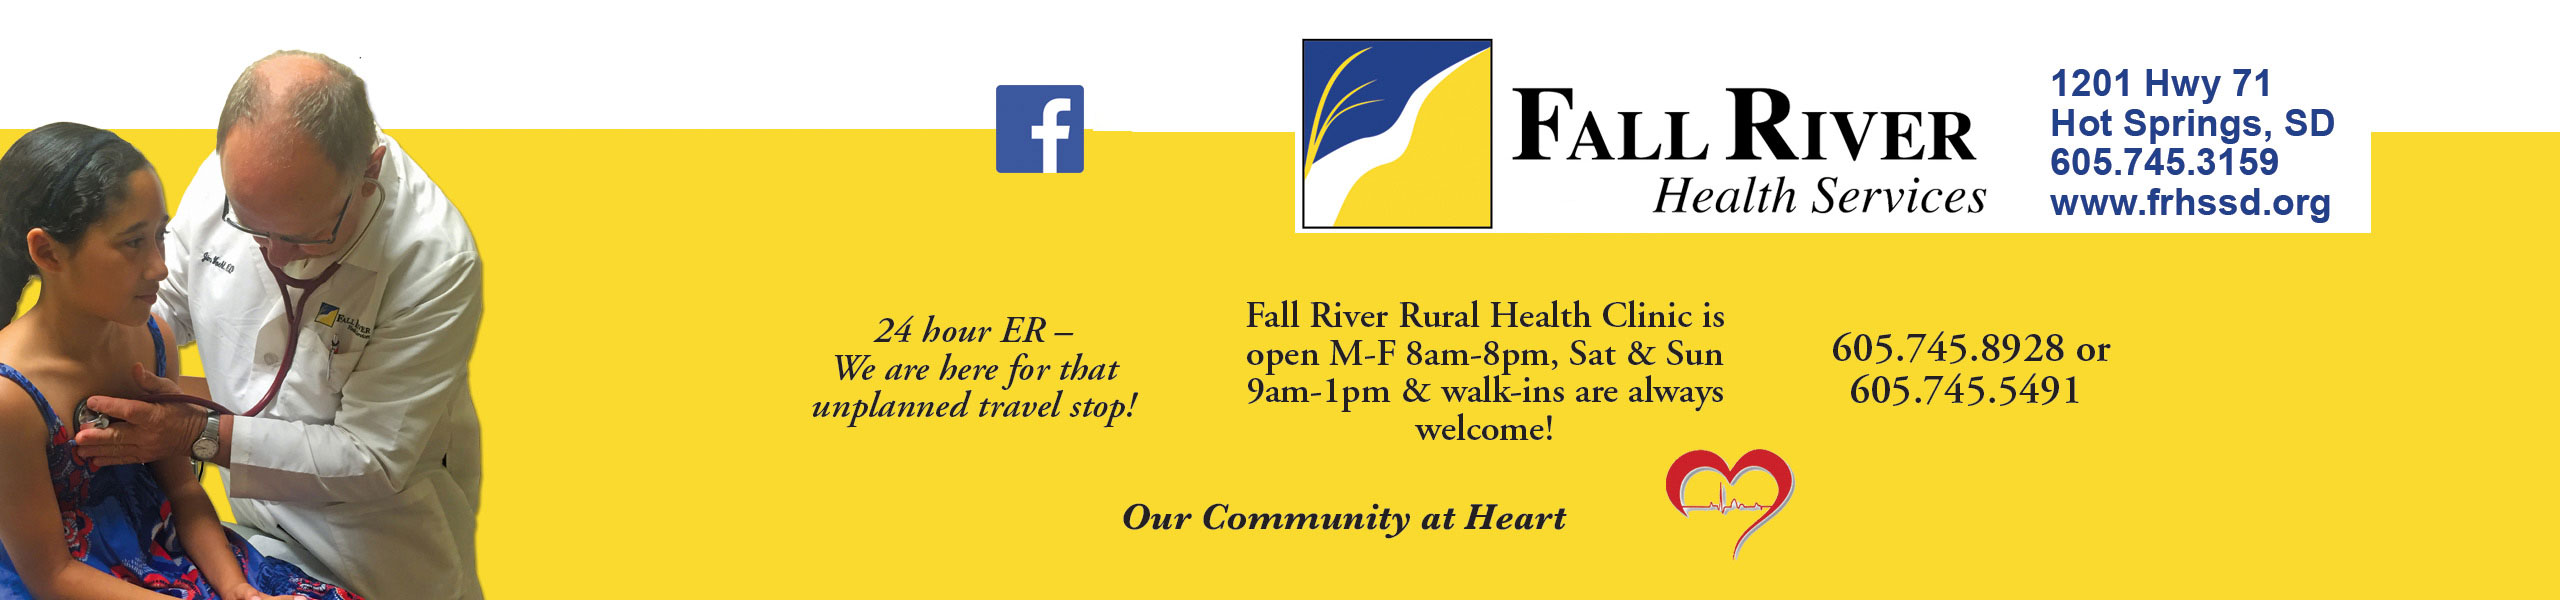 yellow and white banner with a doctor checking a patient lungs sounds on the left hand side of the banner, a facebook logo and says Fall river health services 1201 hwy 71 Hot Springs, SD 605.745.3159 www.frhssd.org. 24 hour ER. We are here for that unplanned travel stop! Fall River Rural Health Clinic is open Monday through Friday 8 am to 8 pm, Saturday and Sunday 9 am to 1pm & walk-ins are always welcome! 605.745.8928 or 605.745.5491 Our community at Heart with a heart beside the text